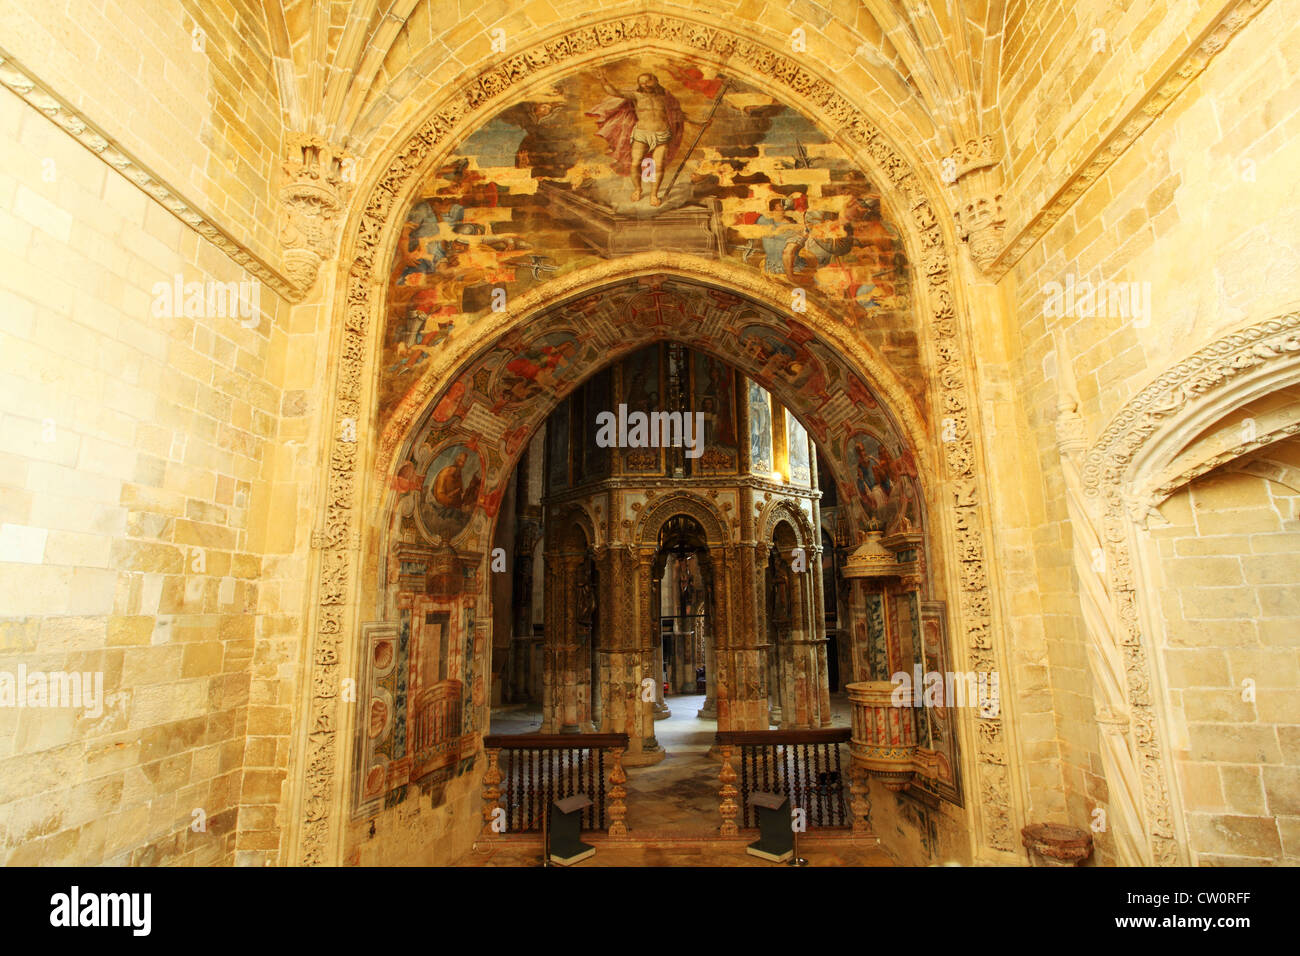 The Charola (also known as the Templars' Apse or Rotunda) at the Convent of Christ in Tomar, Portugal. - Stock Image